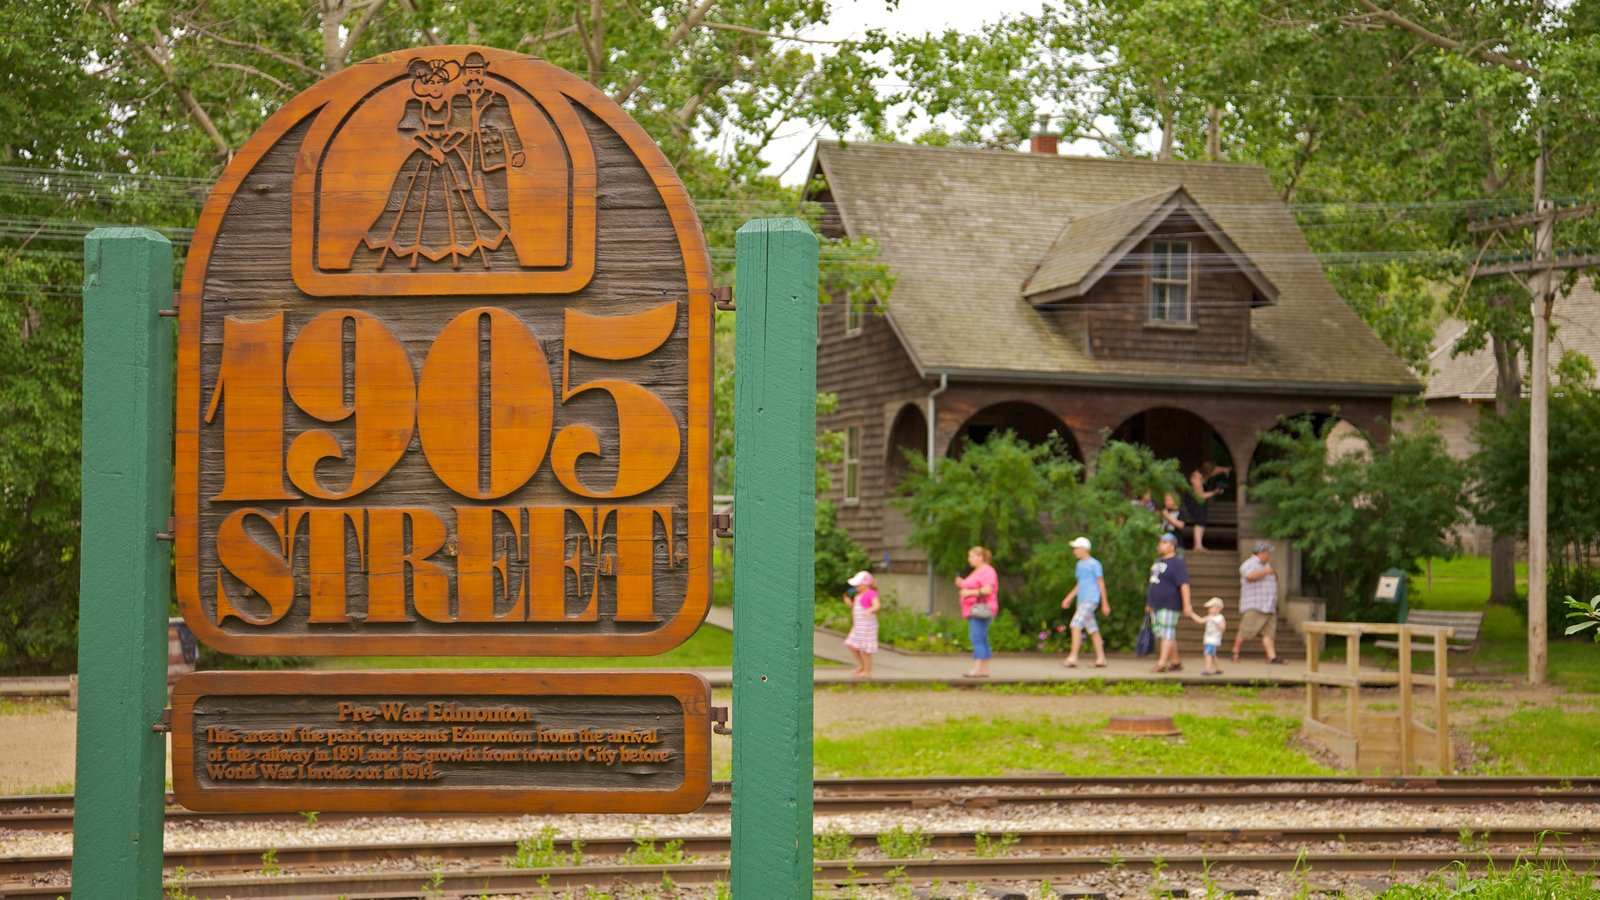 Fort Edmonton Park featuring a park, a house and signage